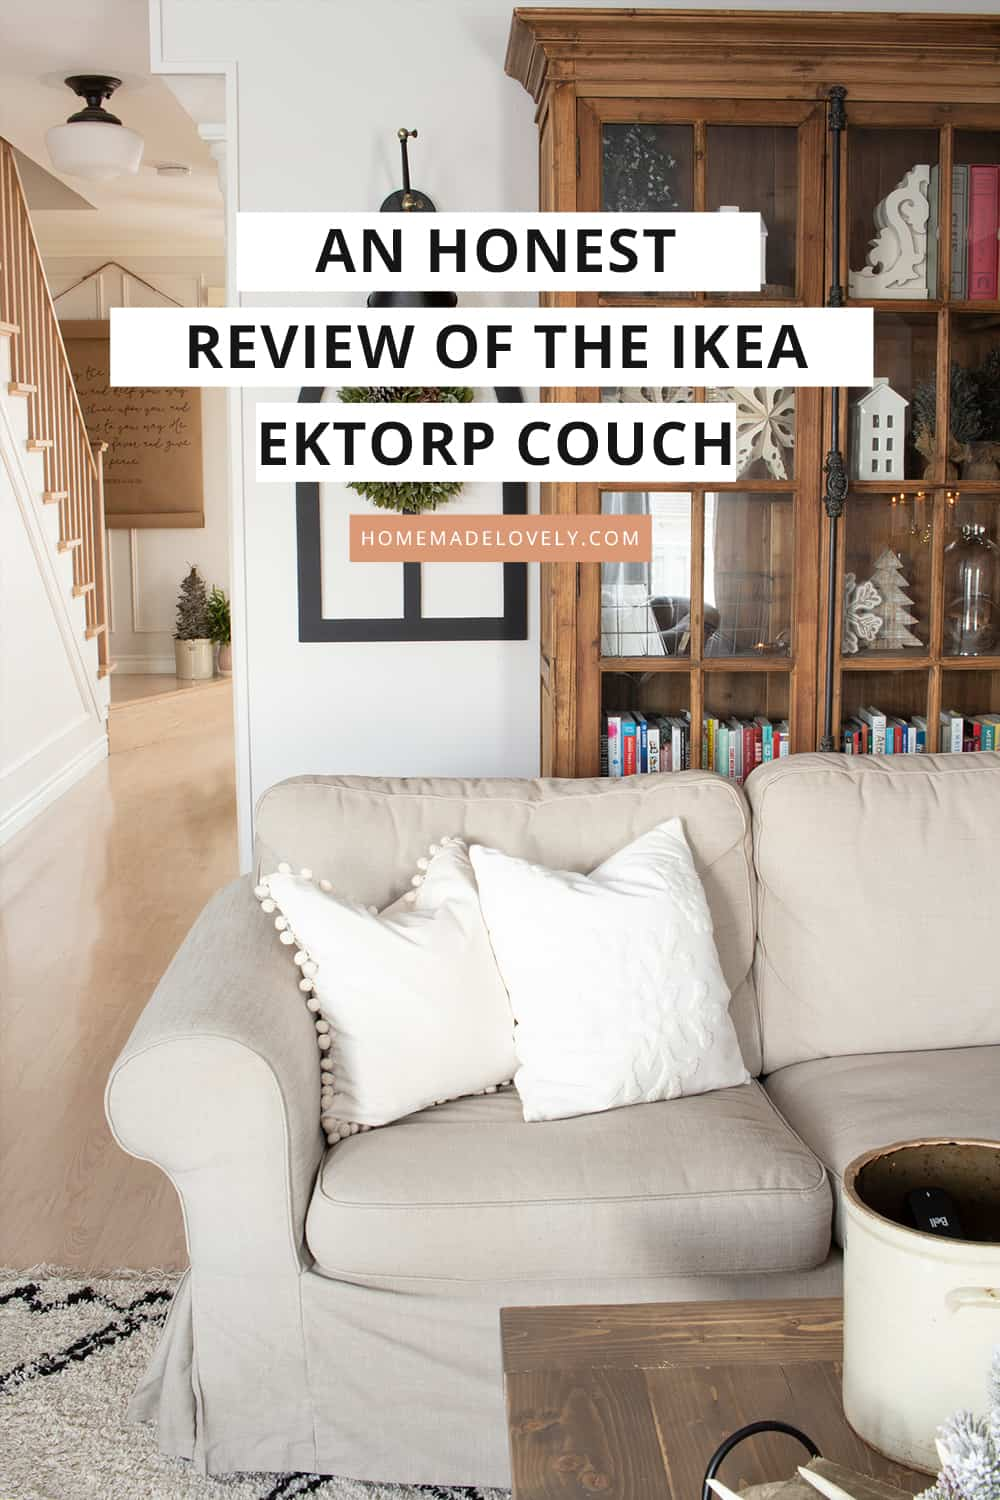 Ikea Ektorp couch with text overlay about the reiew